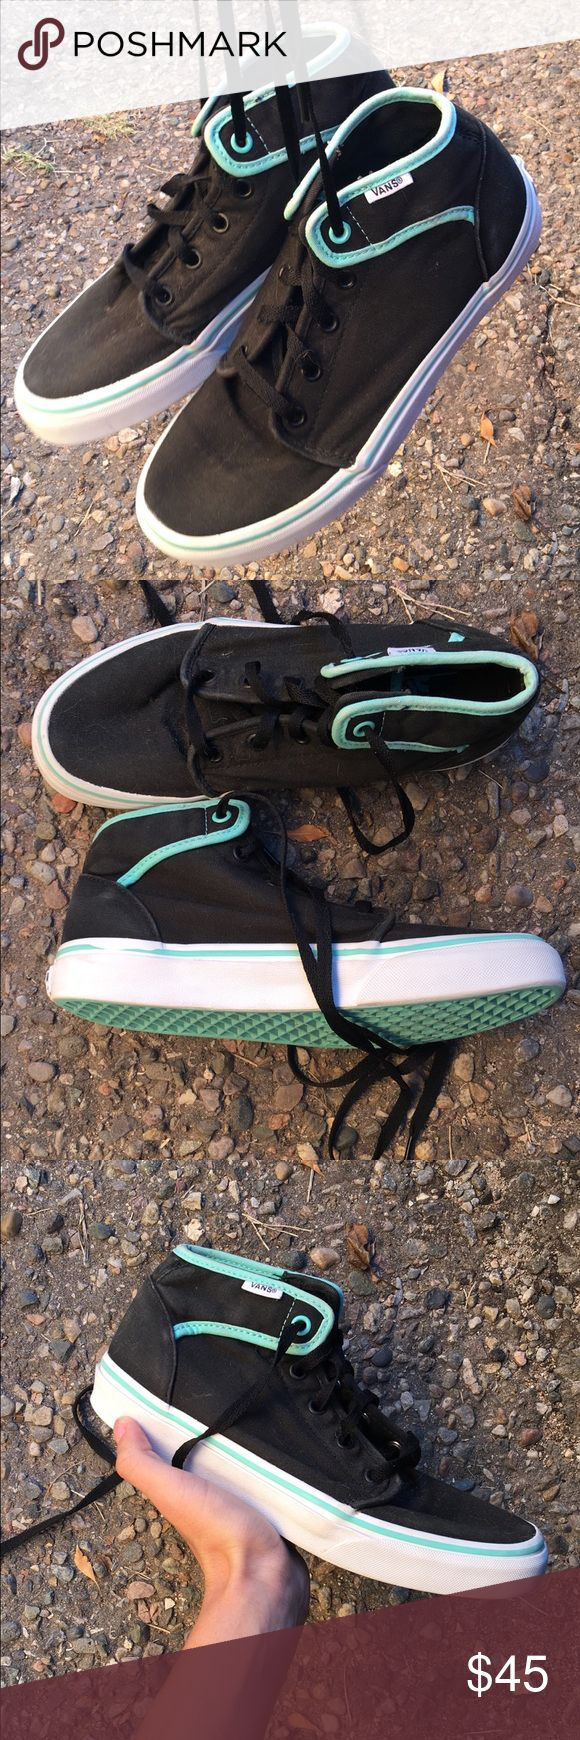 Black & mint vans a pair of black vans with mint added in. they are in excellent condition, worn no more than 5 times. white parts have been washed and bleached. i got these and never wear them so give them a good home. 6 in mens and a 7.5 in women's. Vans Shoes Sneakers